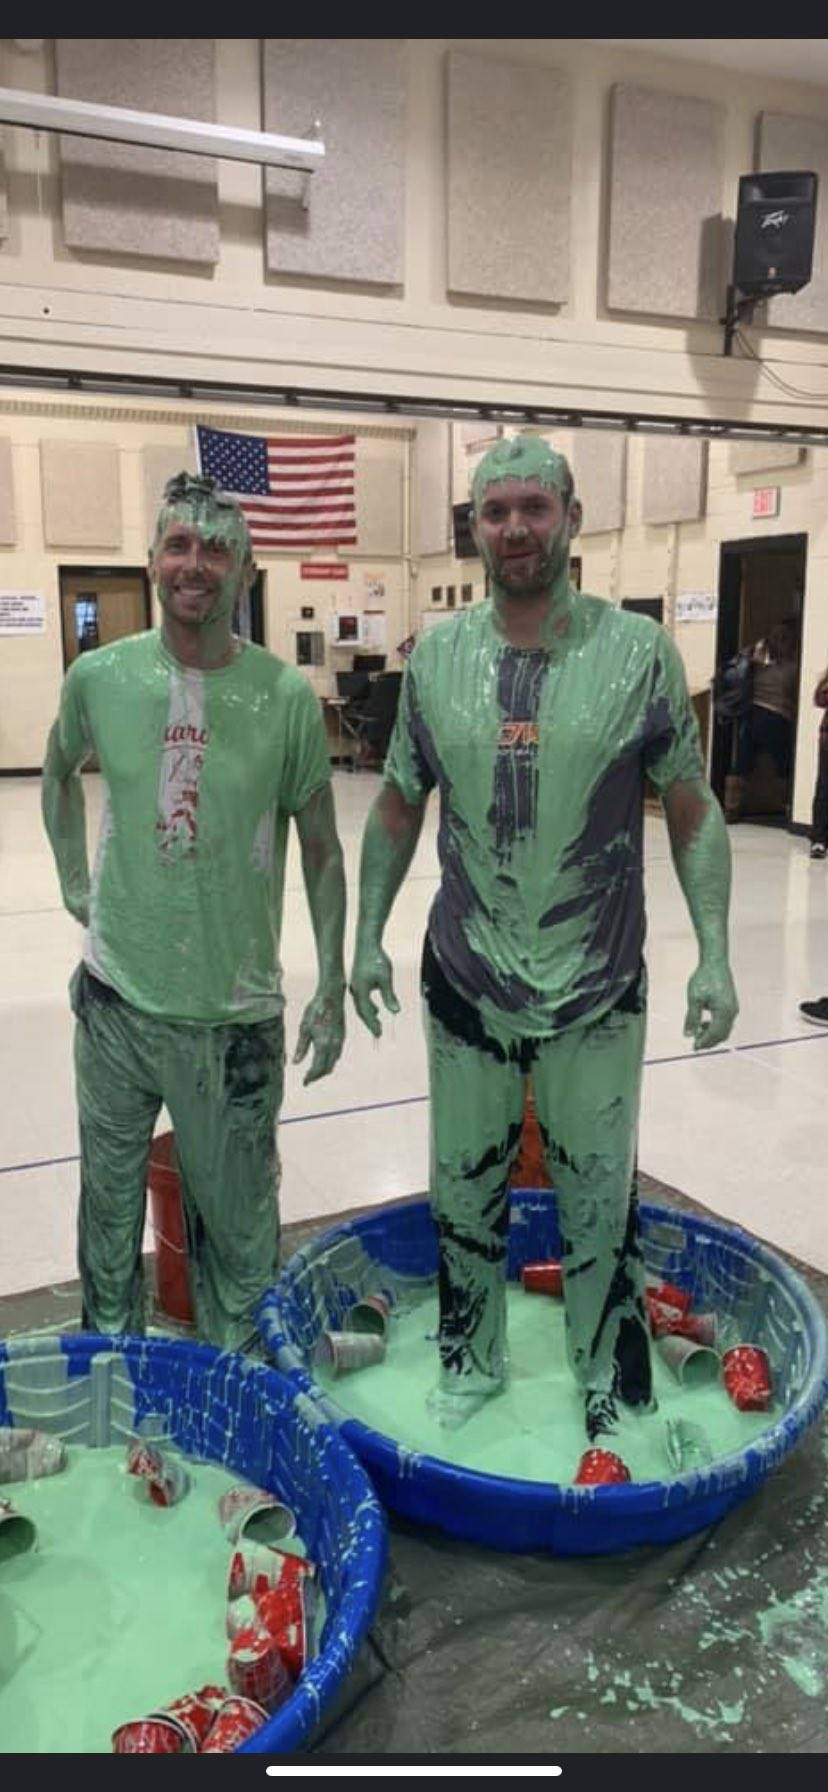 Slime Incentive for Students - Mr. Prezioso and Mr. Hazen are great sports! - Fall 2019